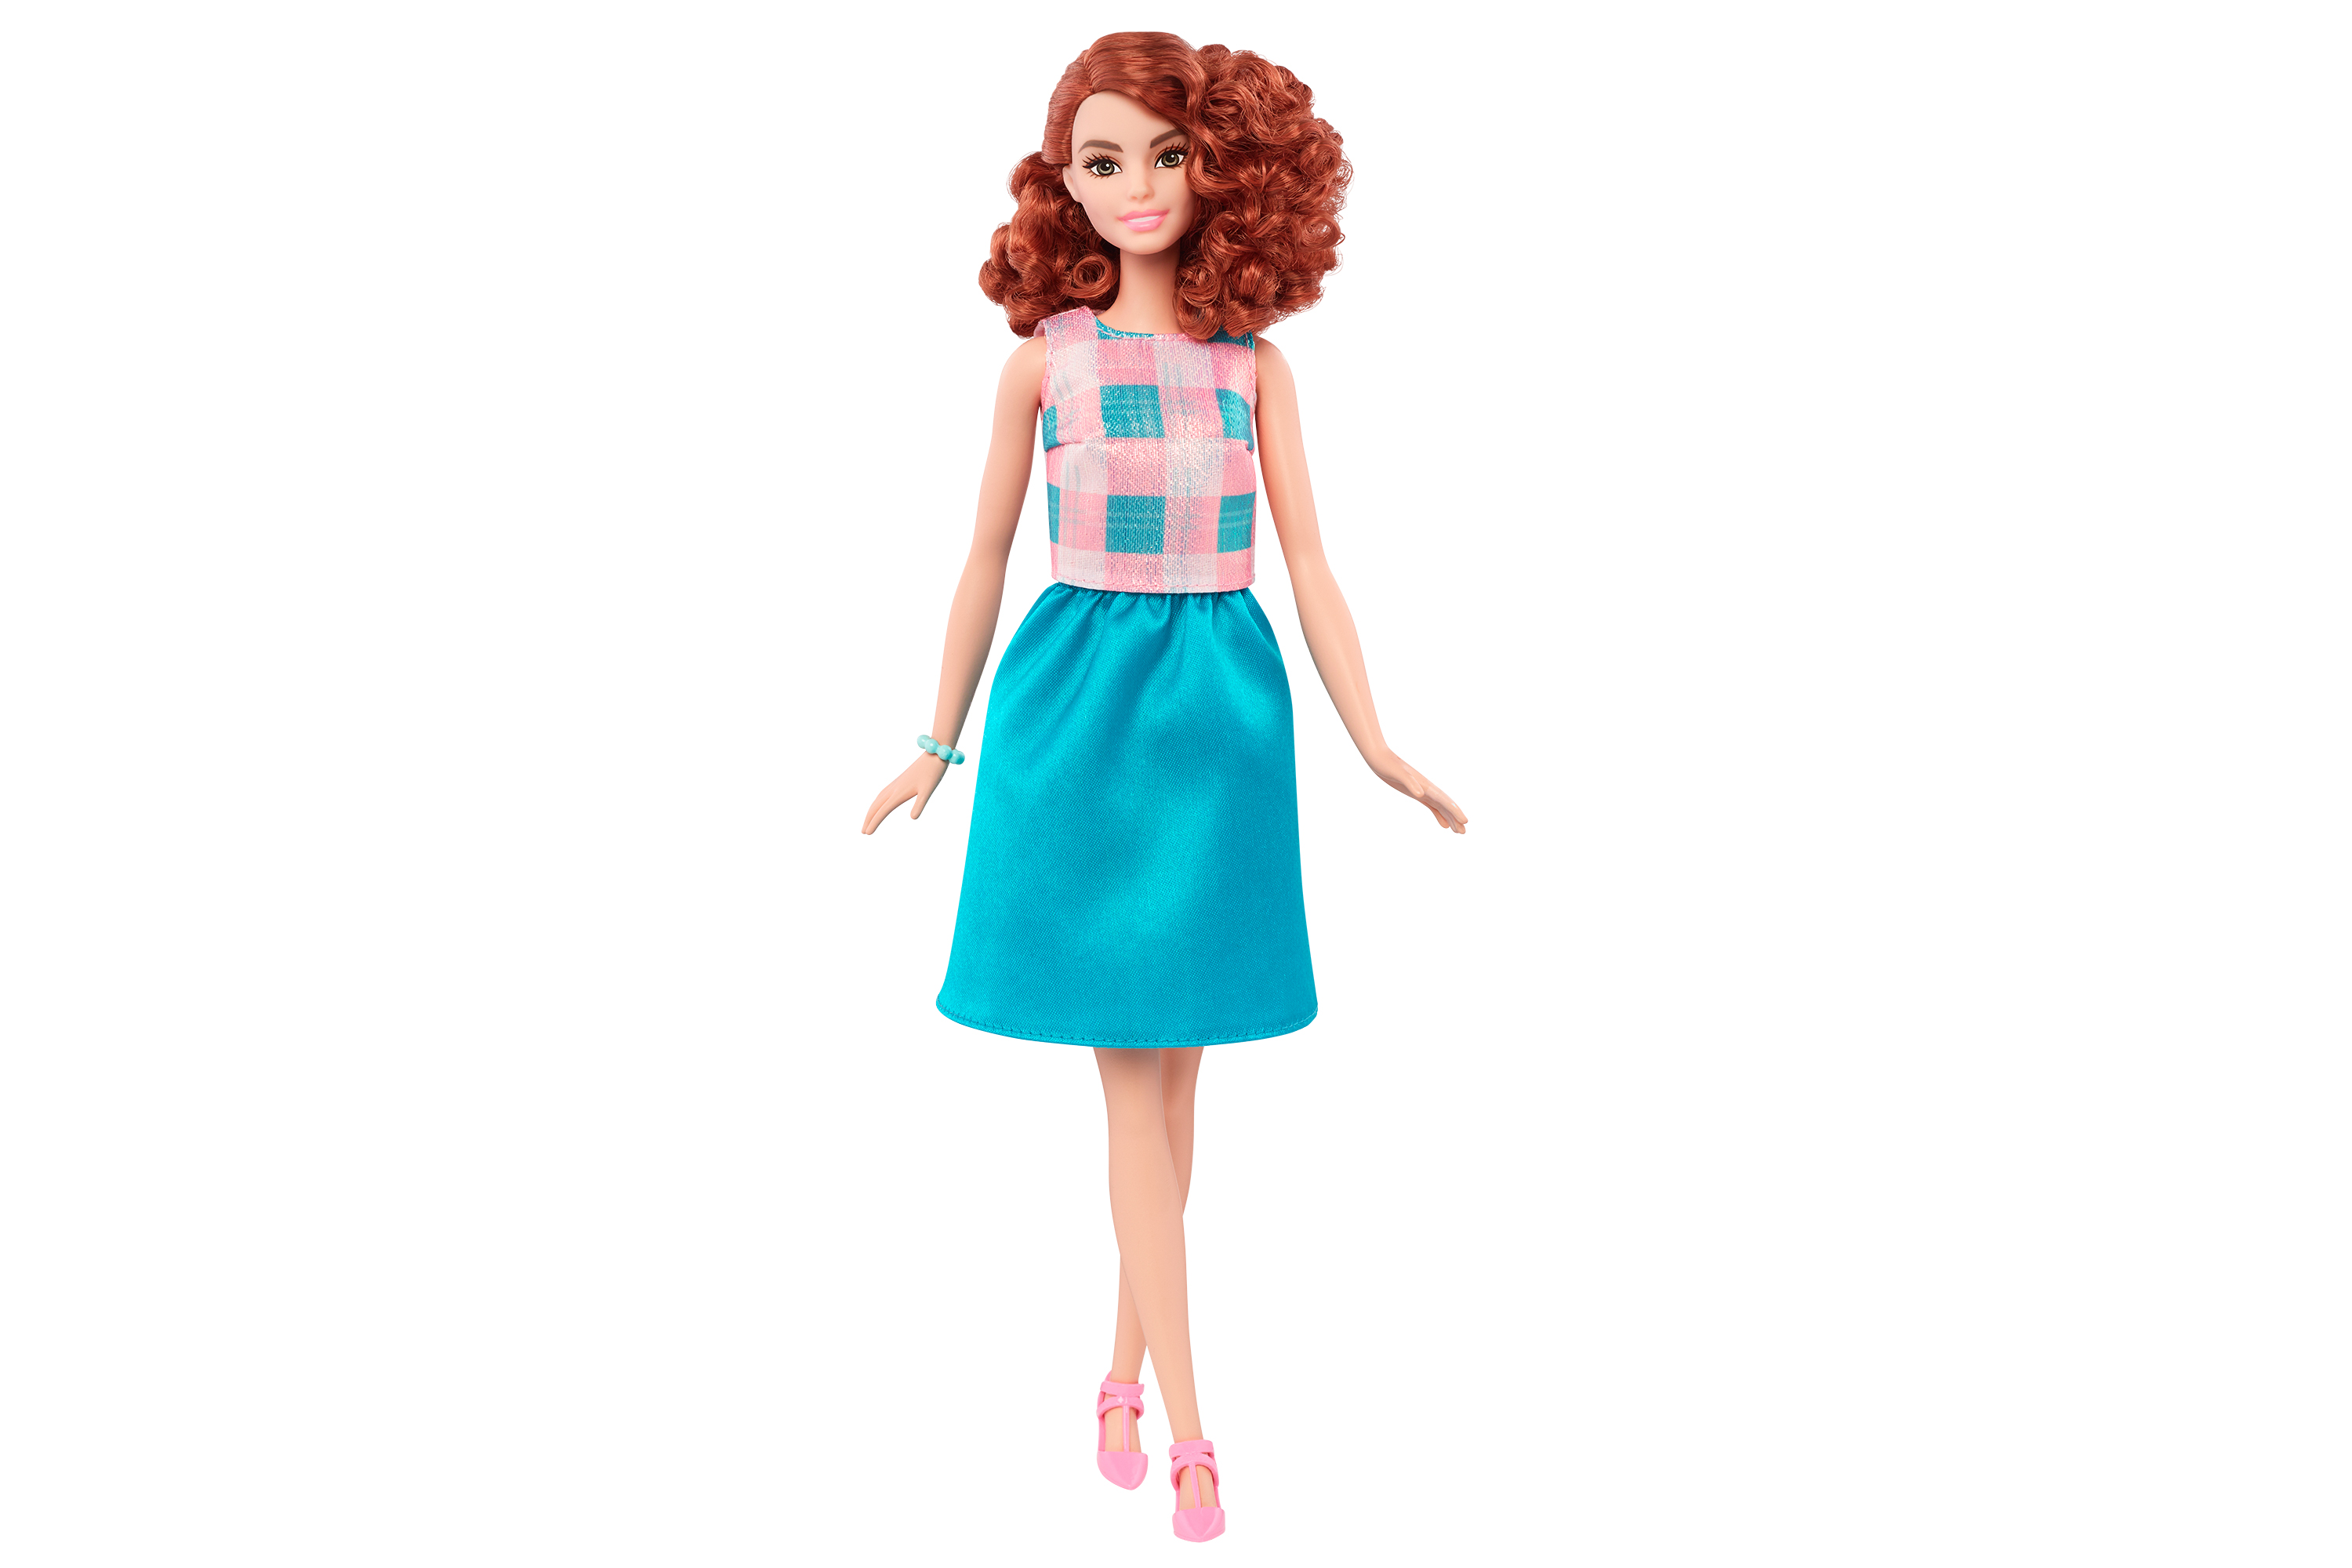 One of Mattel's new Tall Barbies